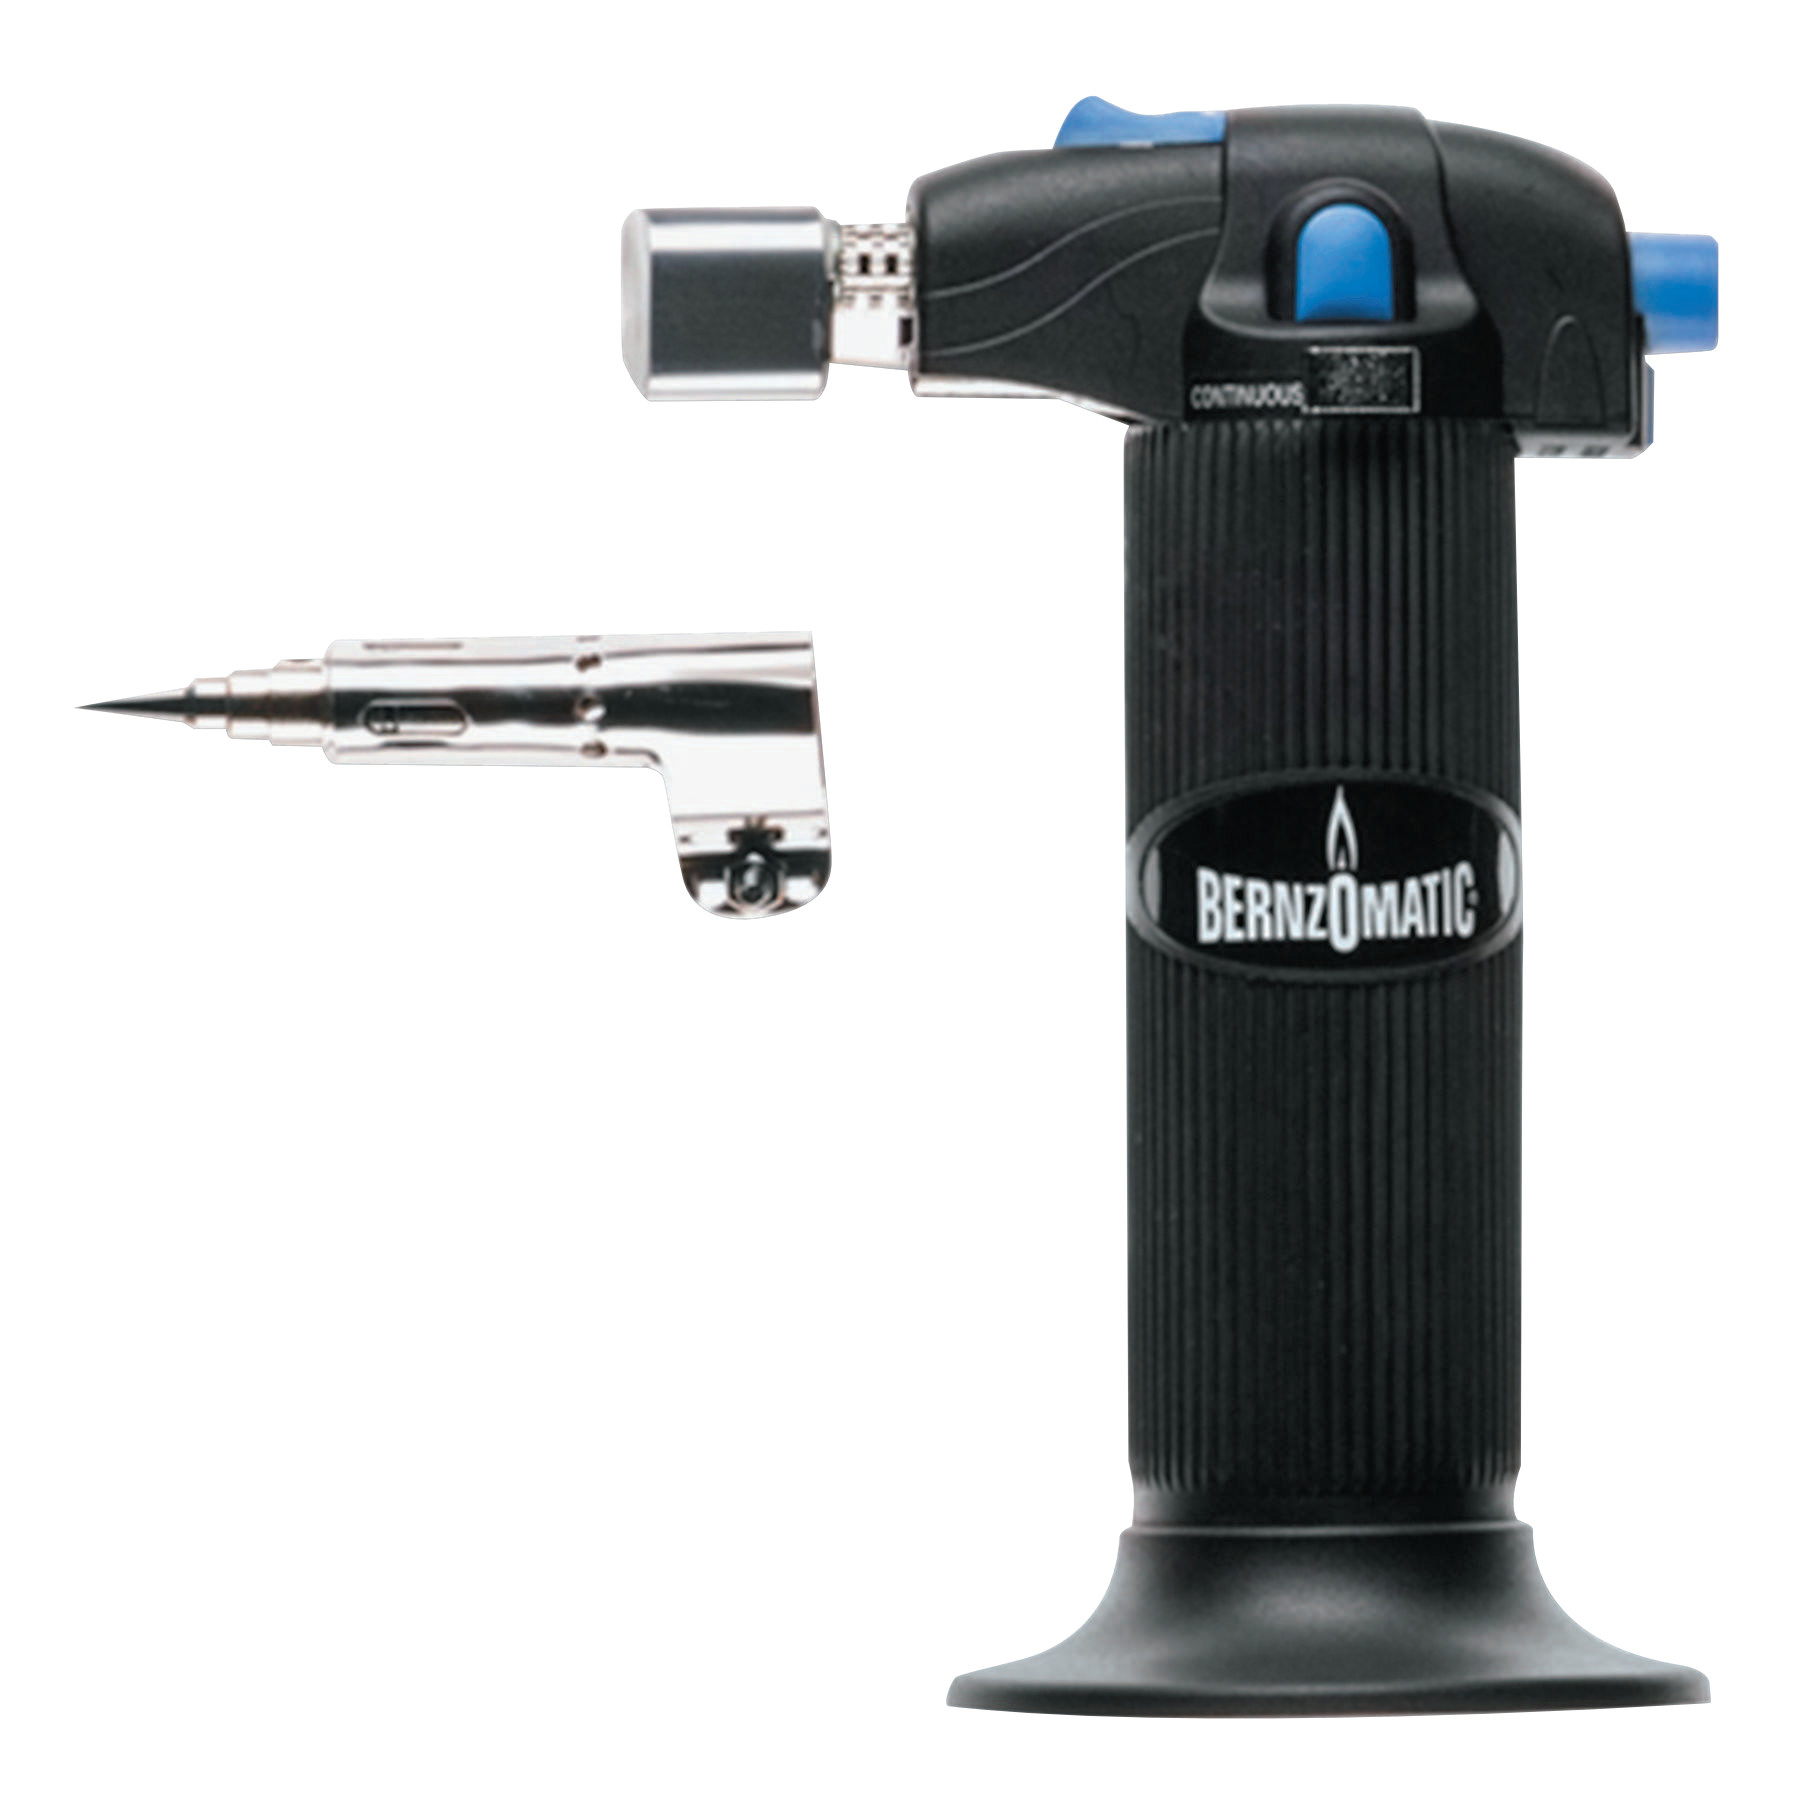 BernzOmatic Trigger Start Micro Torches, Electrical Soldering Tip, Butane